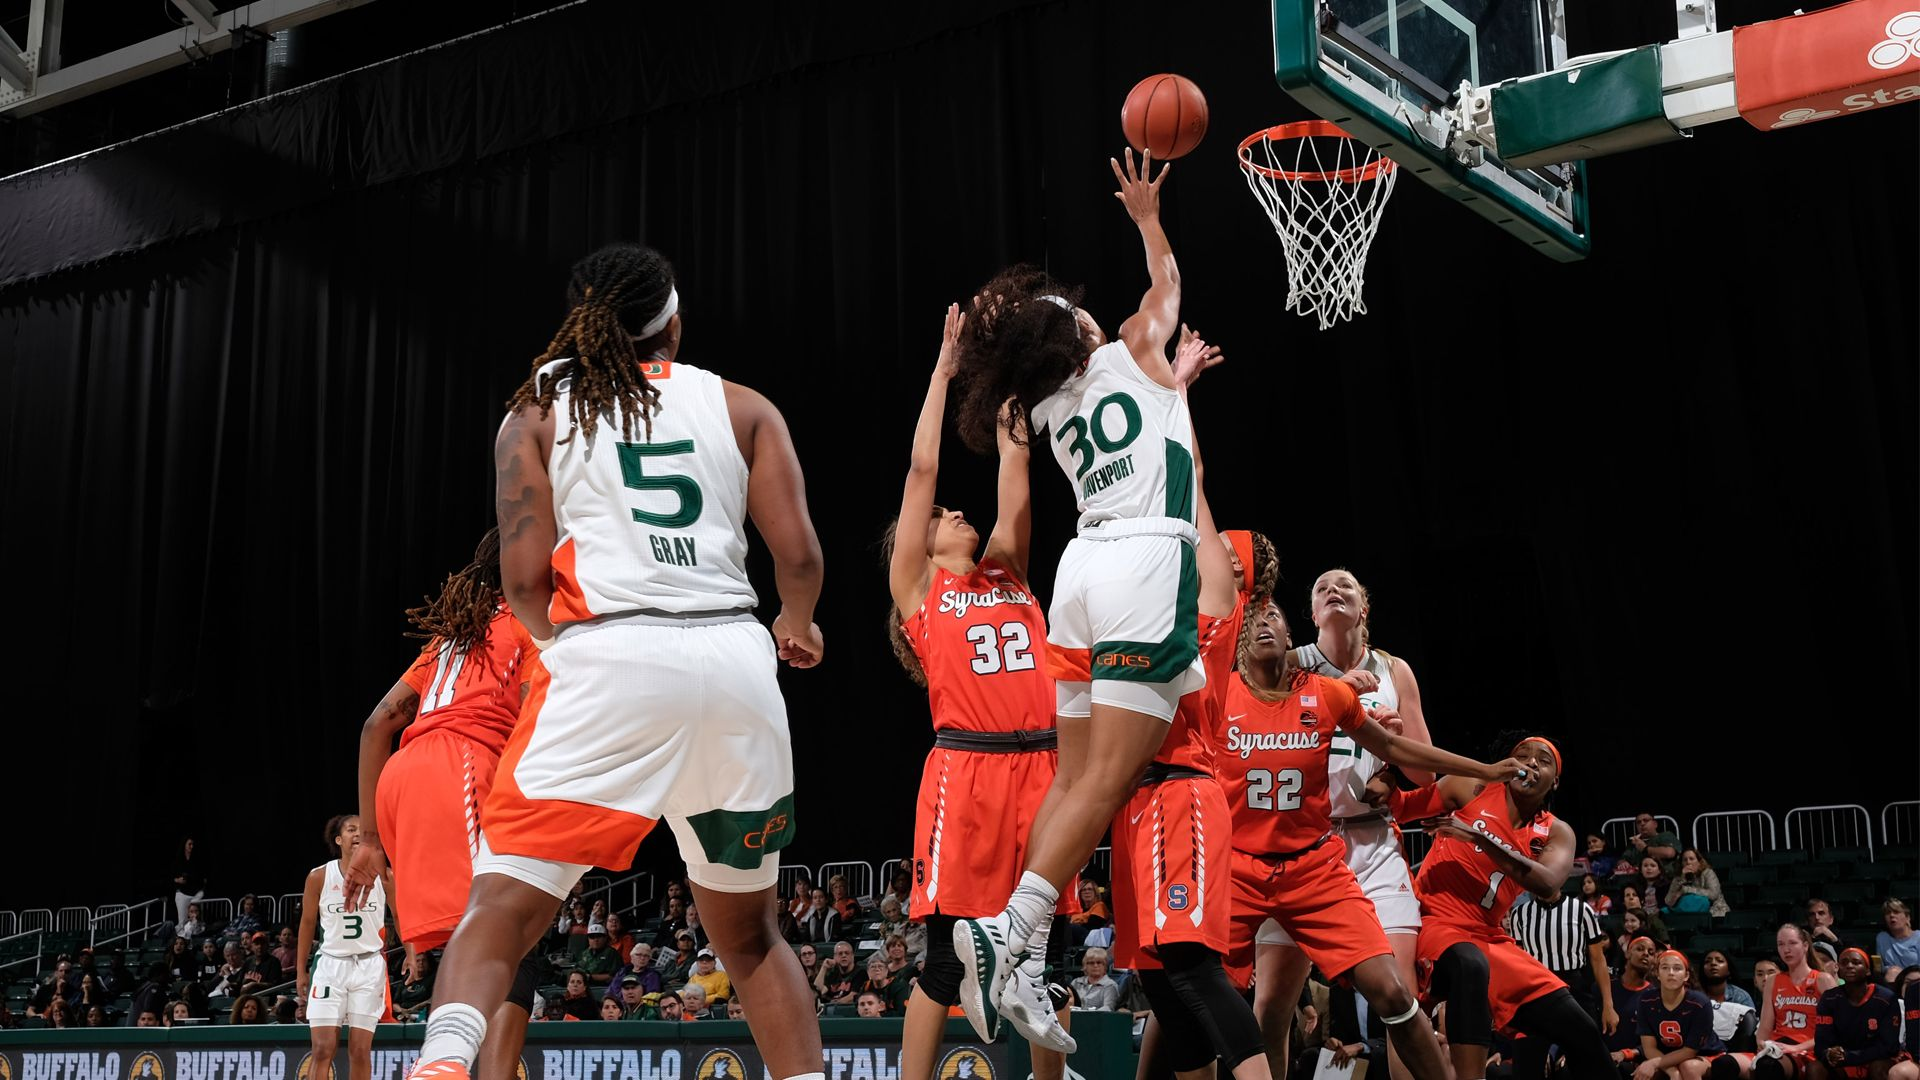 WBB Tops Syracuse, 72-67, for Program's 750th Win